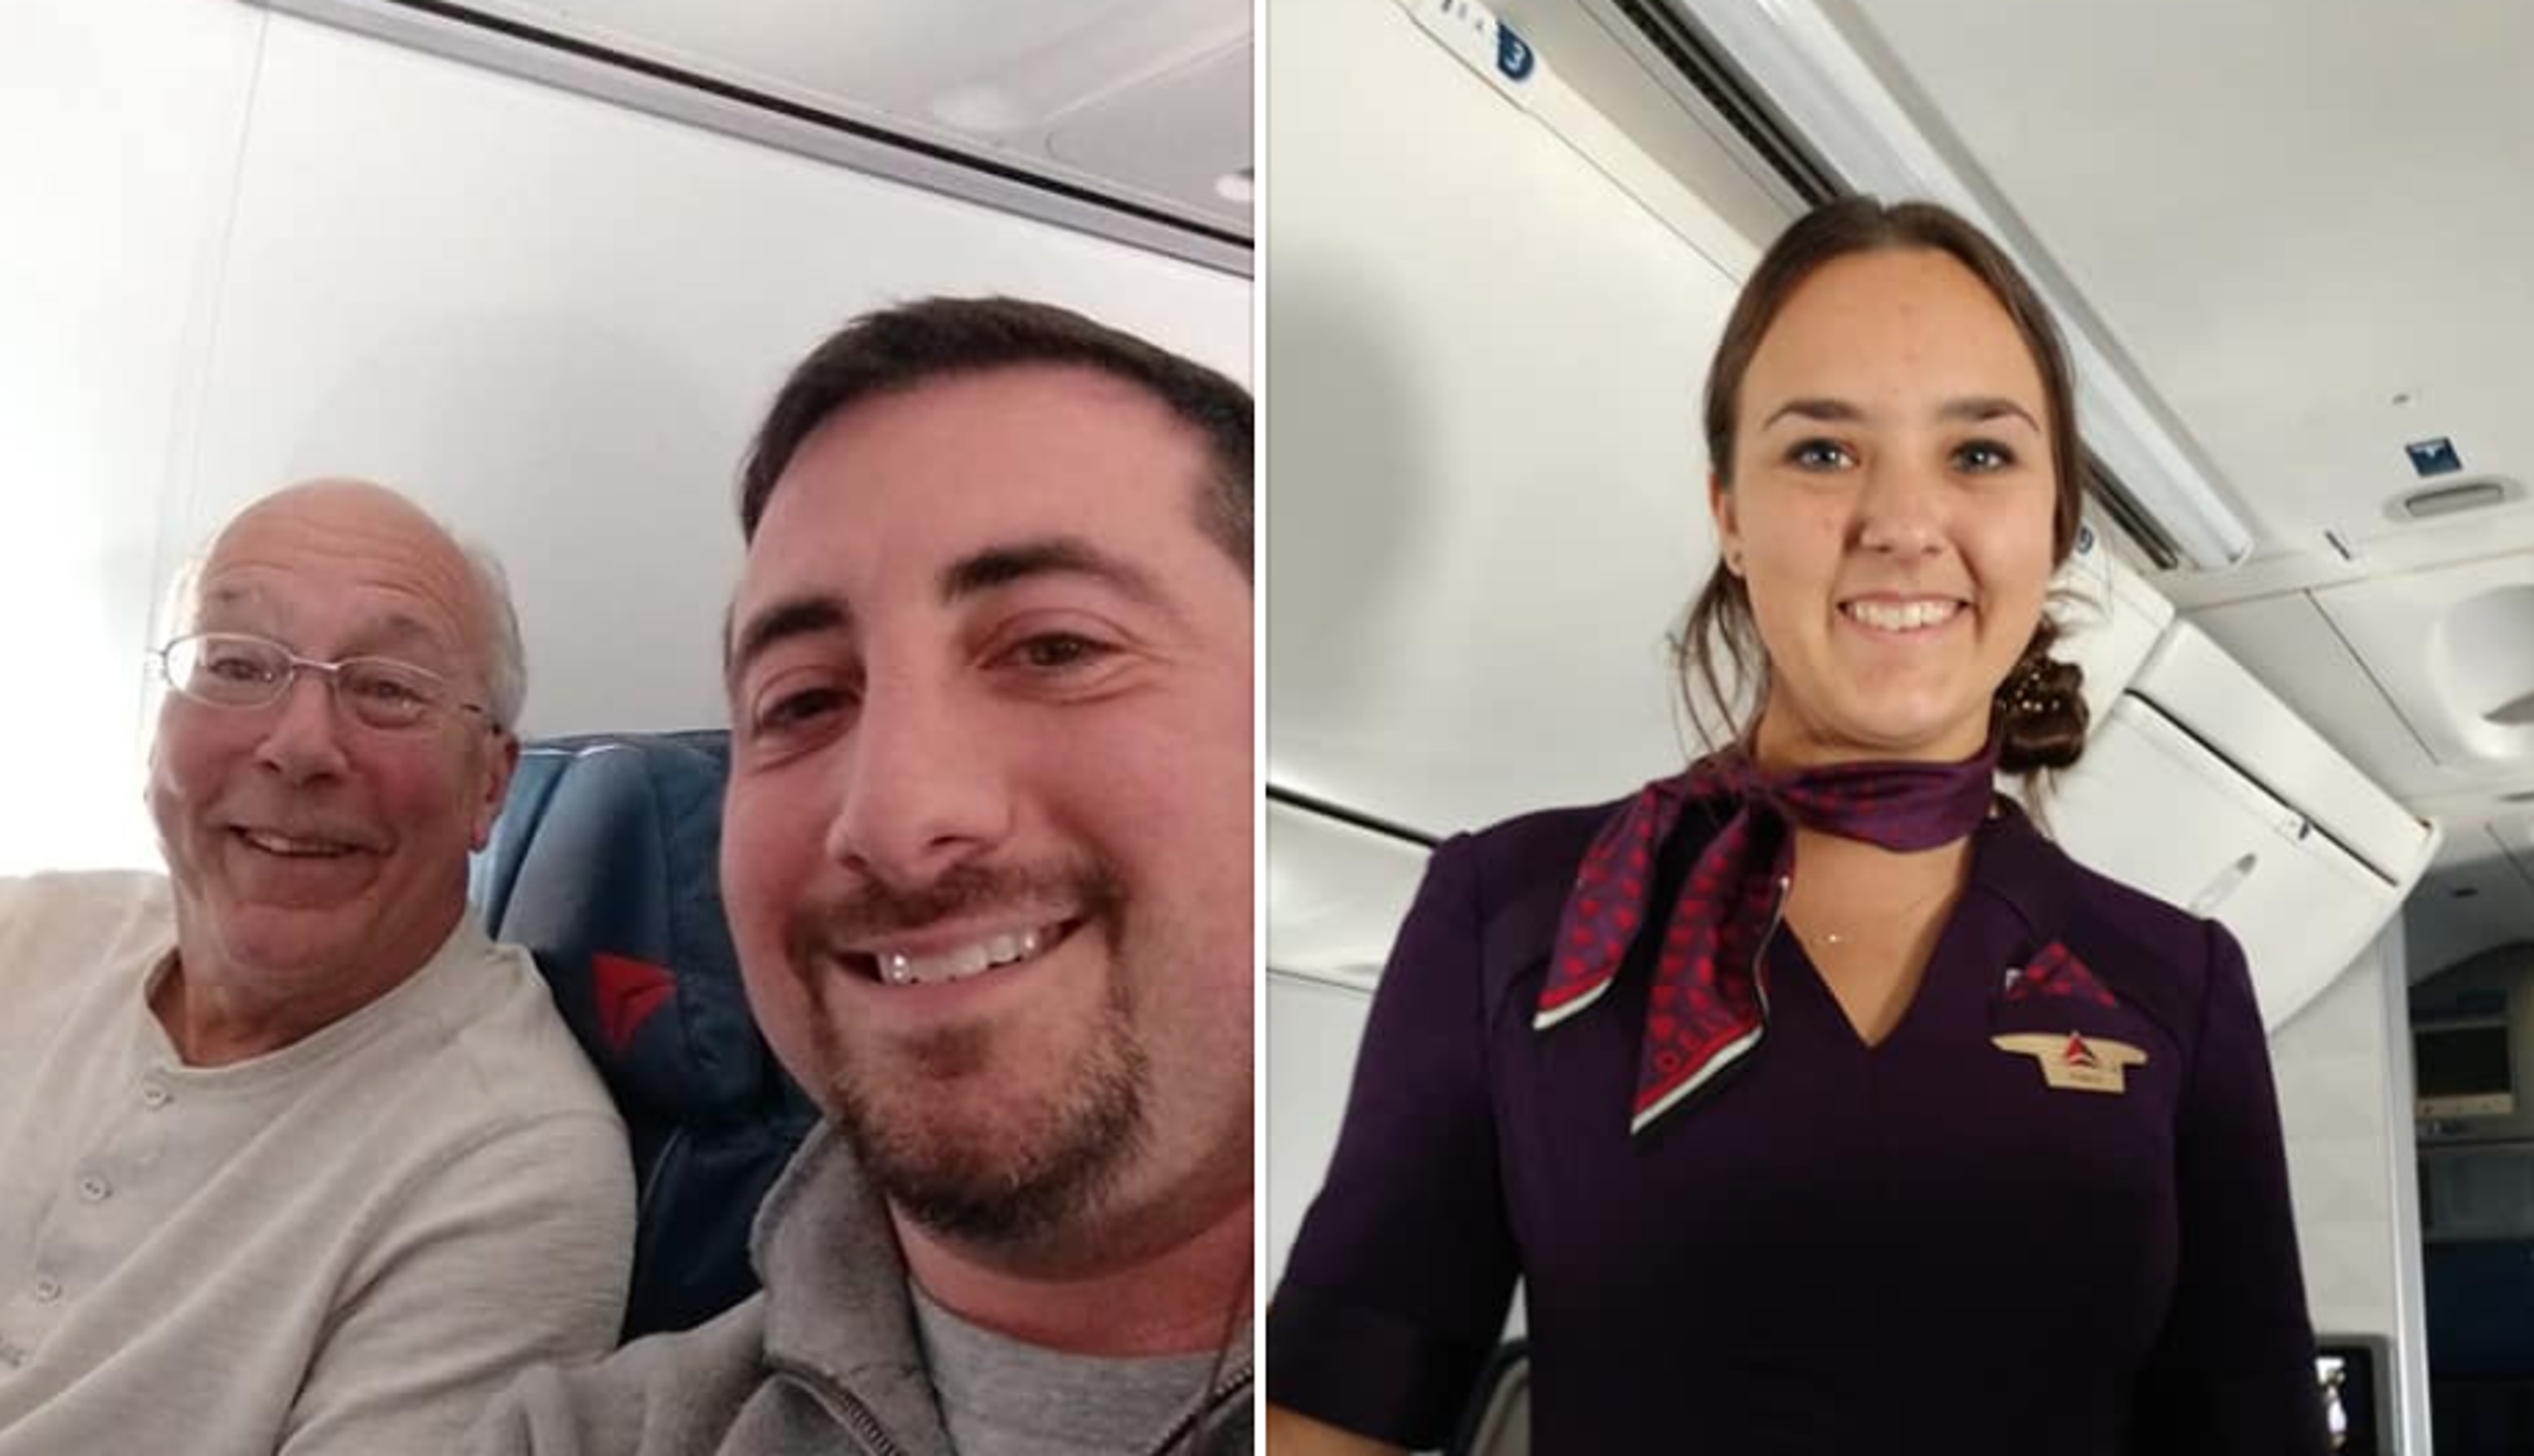 Passenger Flight Attendant Daughter Working Christmas Flies With Dad